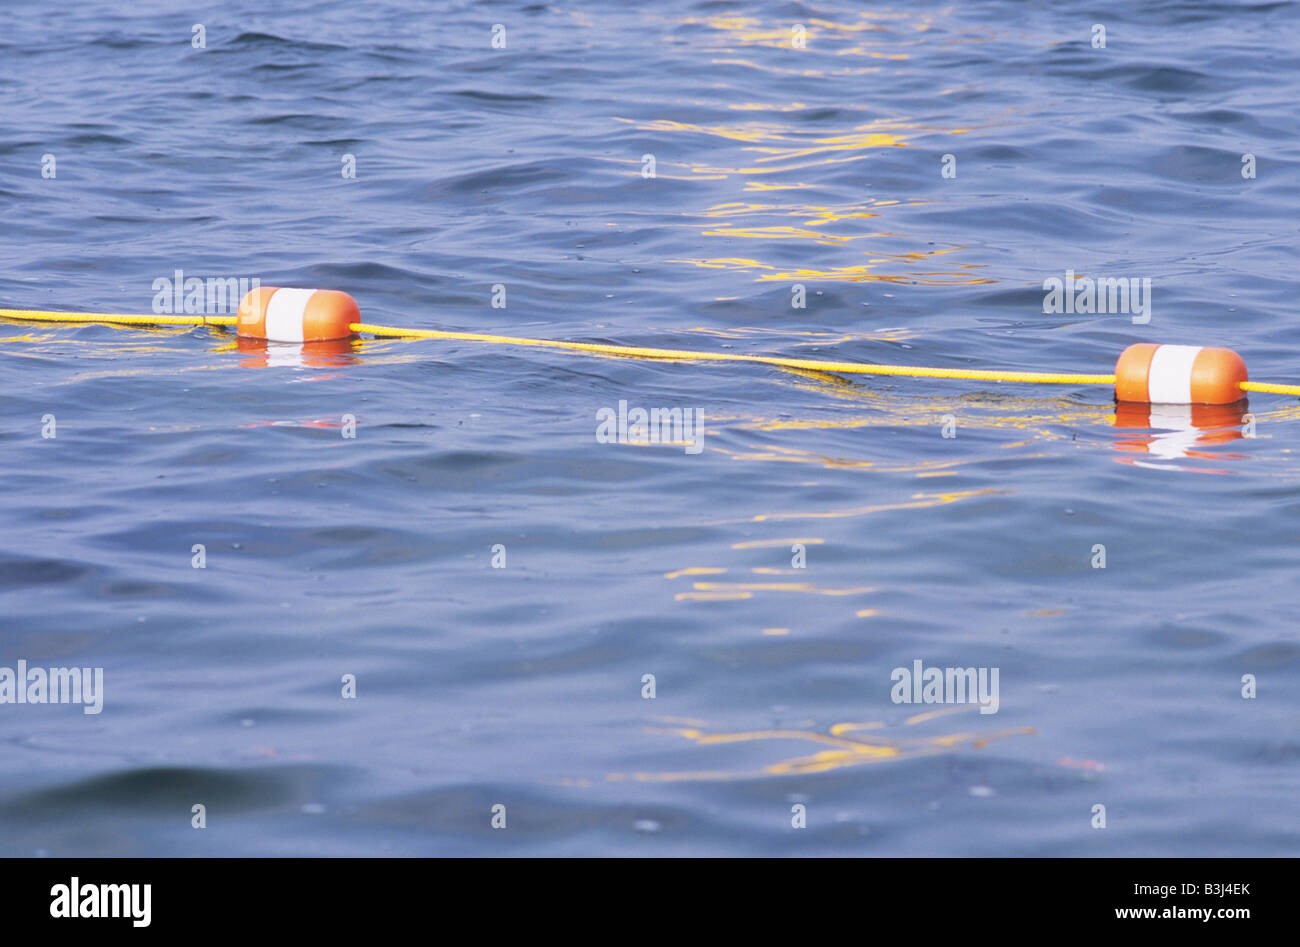 2 Two Orange And White Swim Lane Marker Buoy Floats With